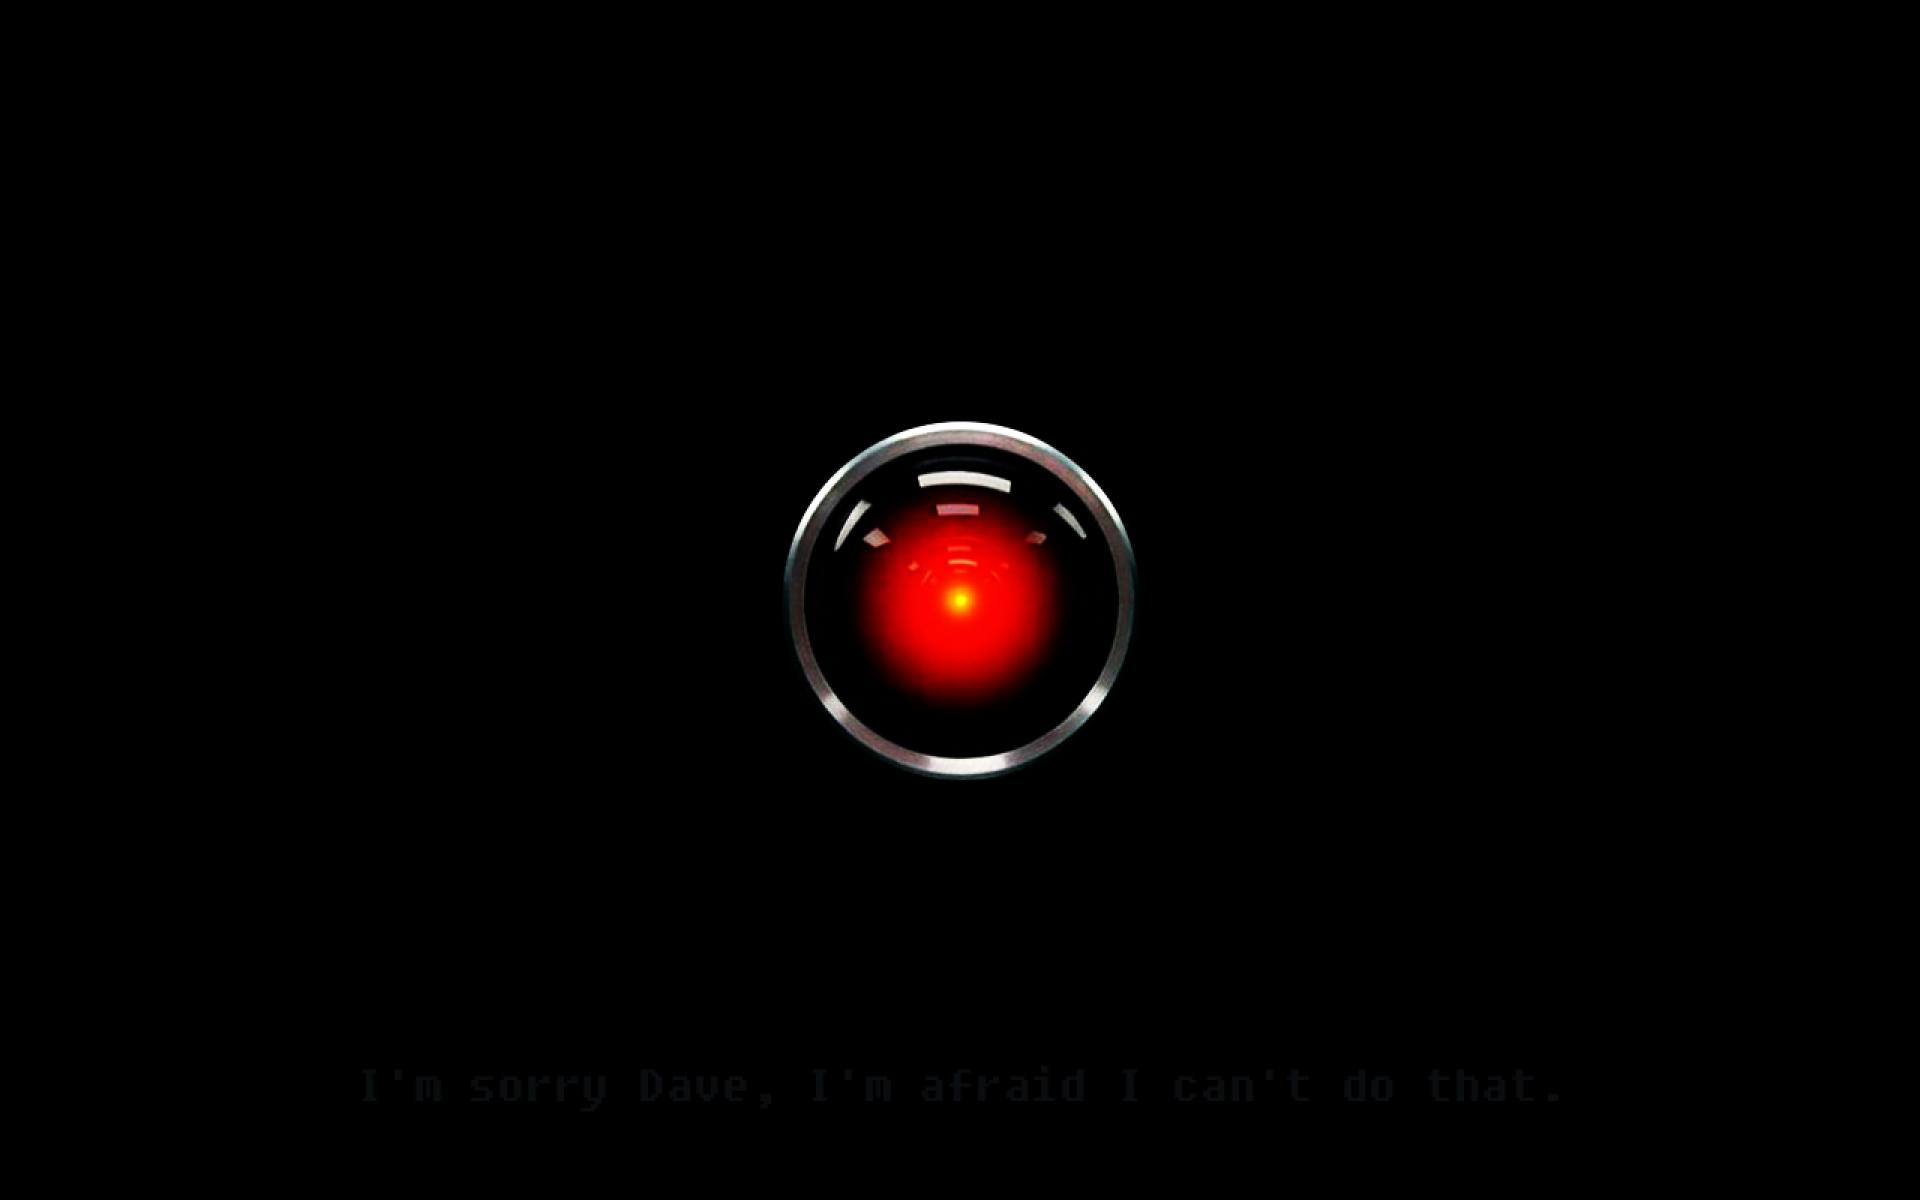 hal 9000 wallpaper ipad